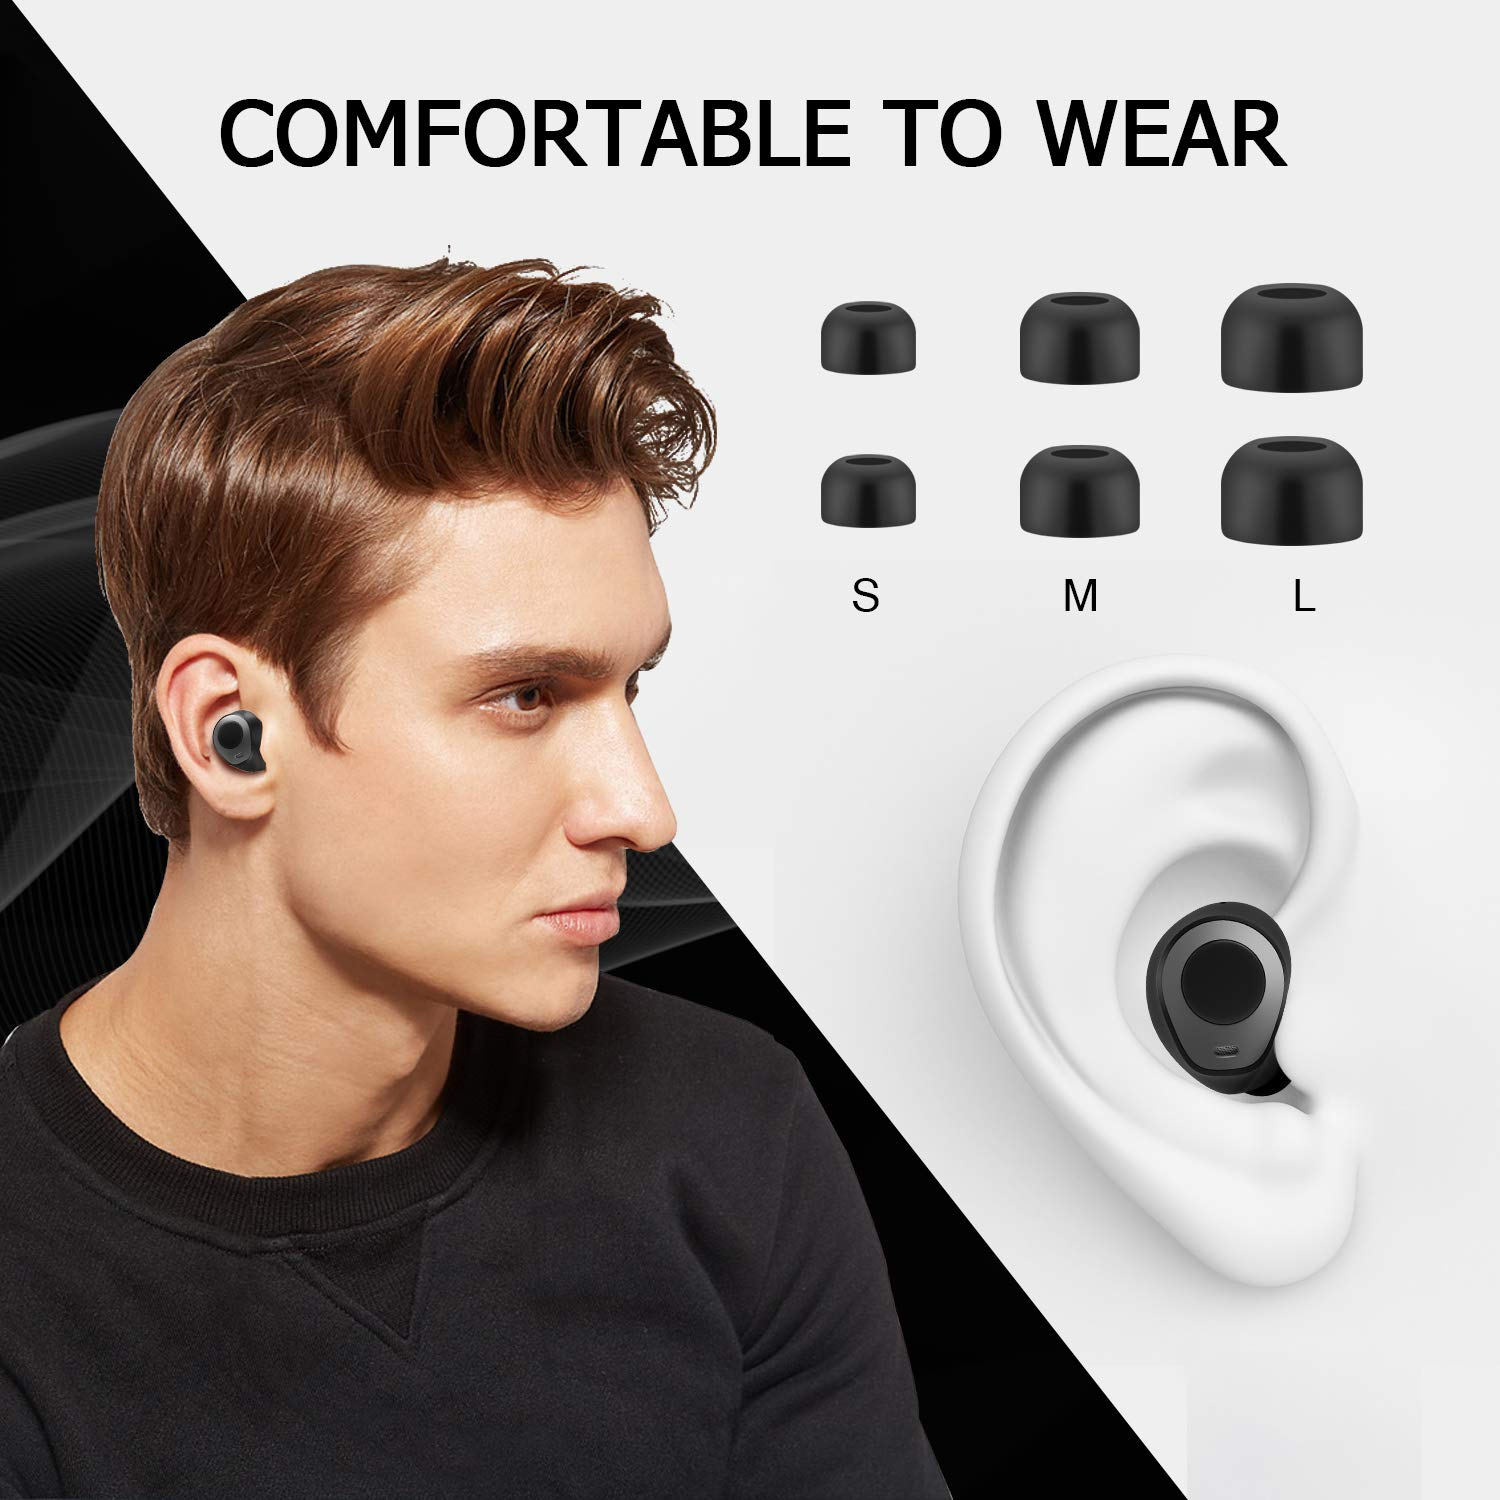 Wireless Bluetooth Earbuds, Waterproof, With Mic and Charging Case - BelCorner